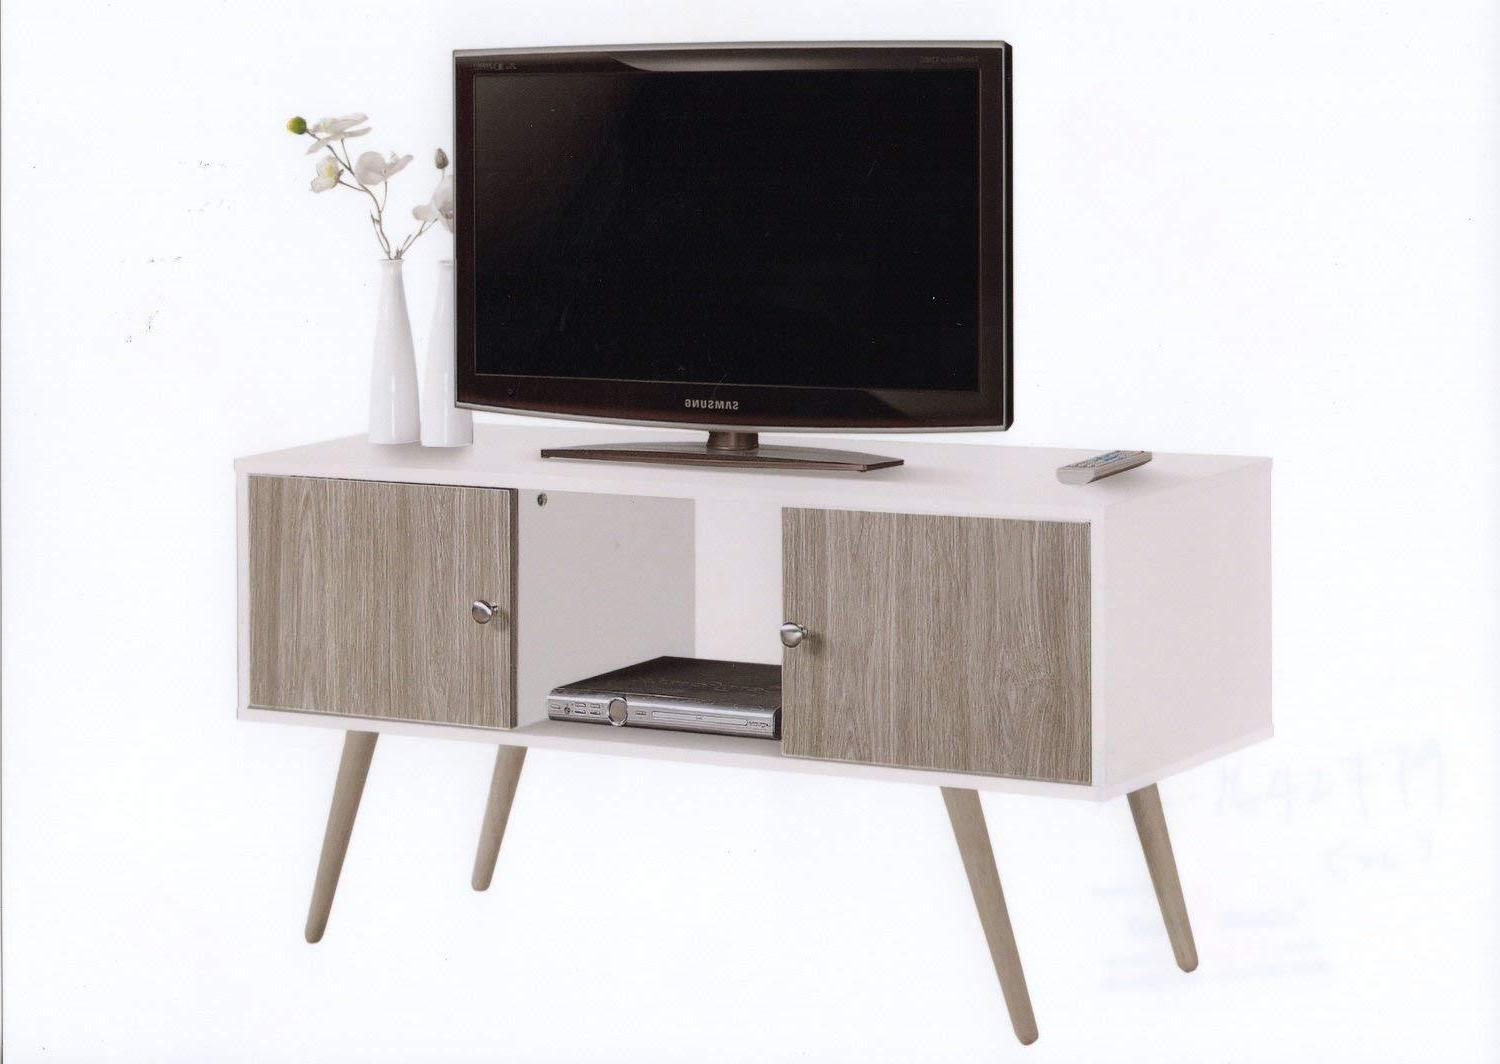 hodedah retro style tv stand with two